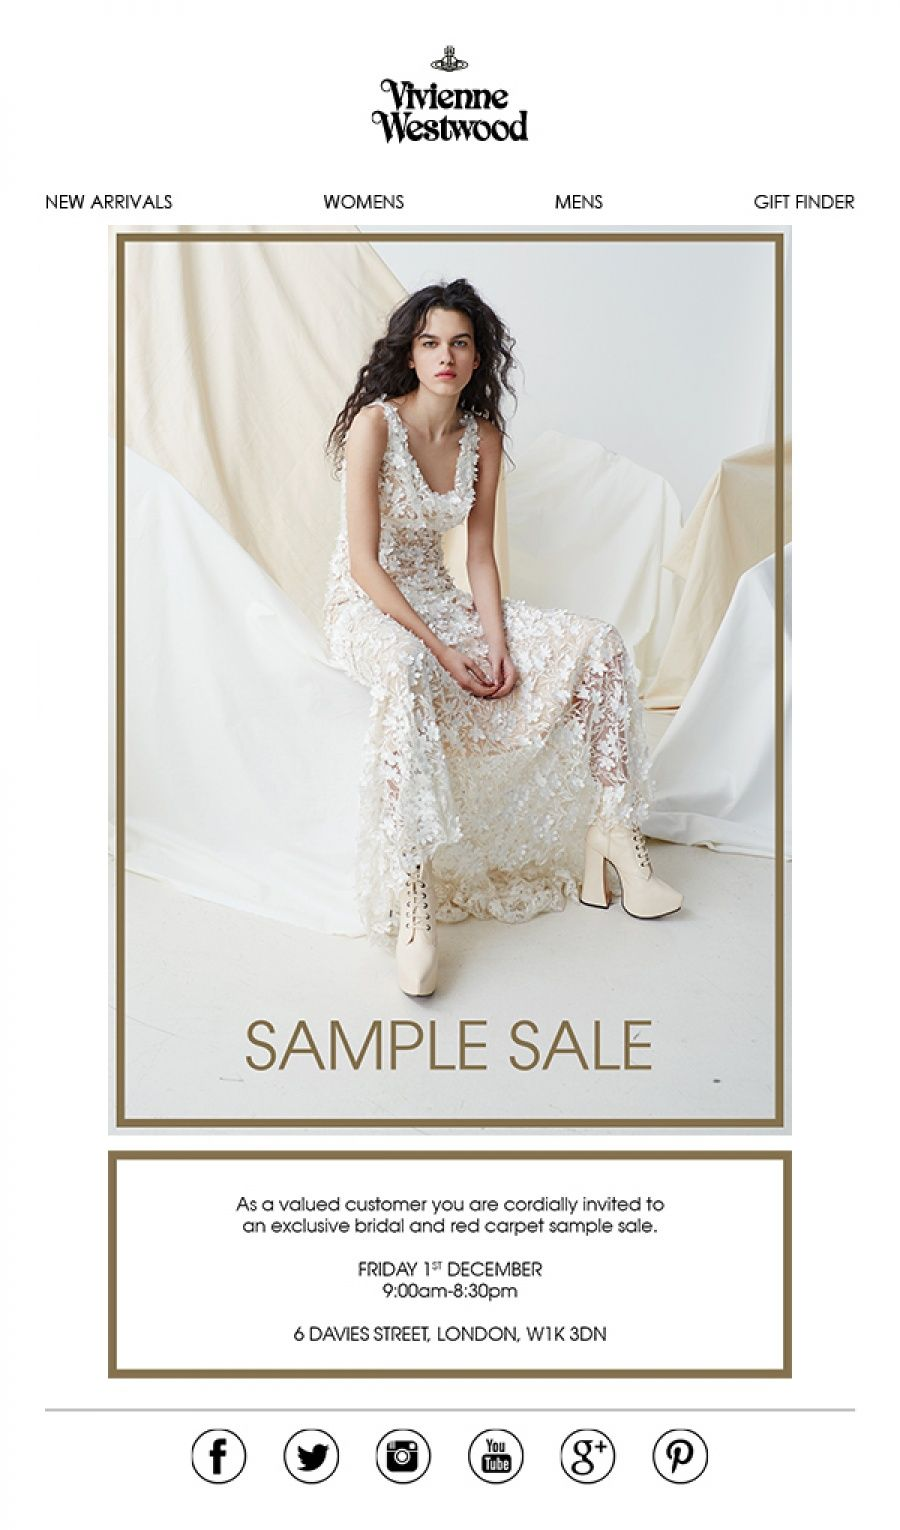 Vivienne Westwood Bridal Sample Sale -- London -- 01/12 | Sample ...